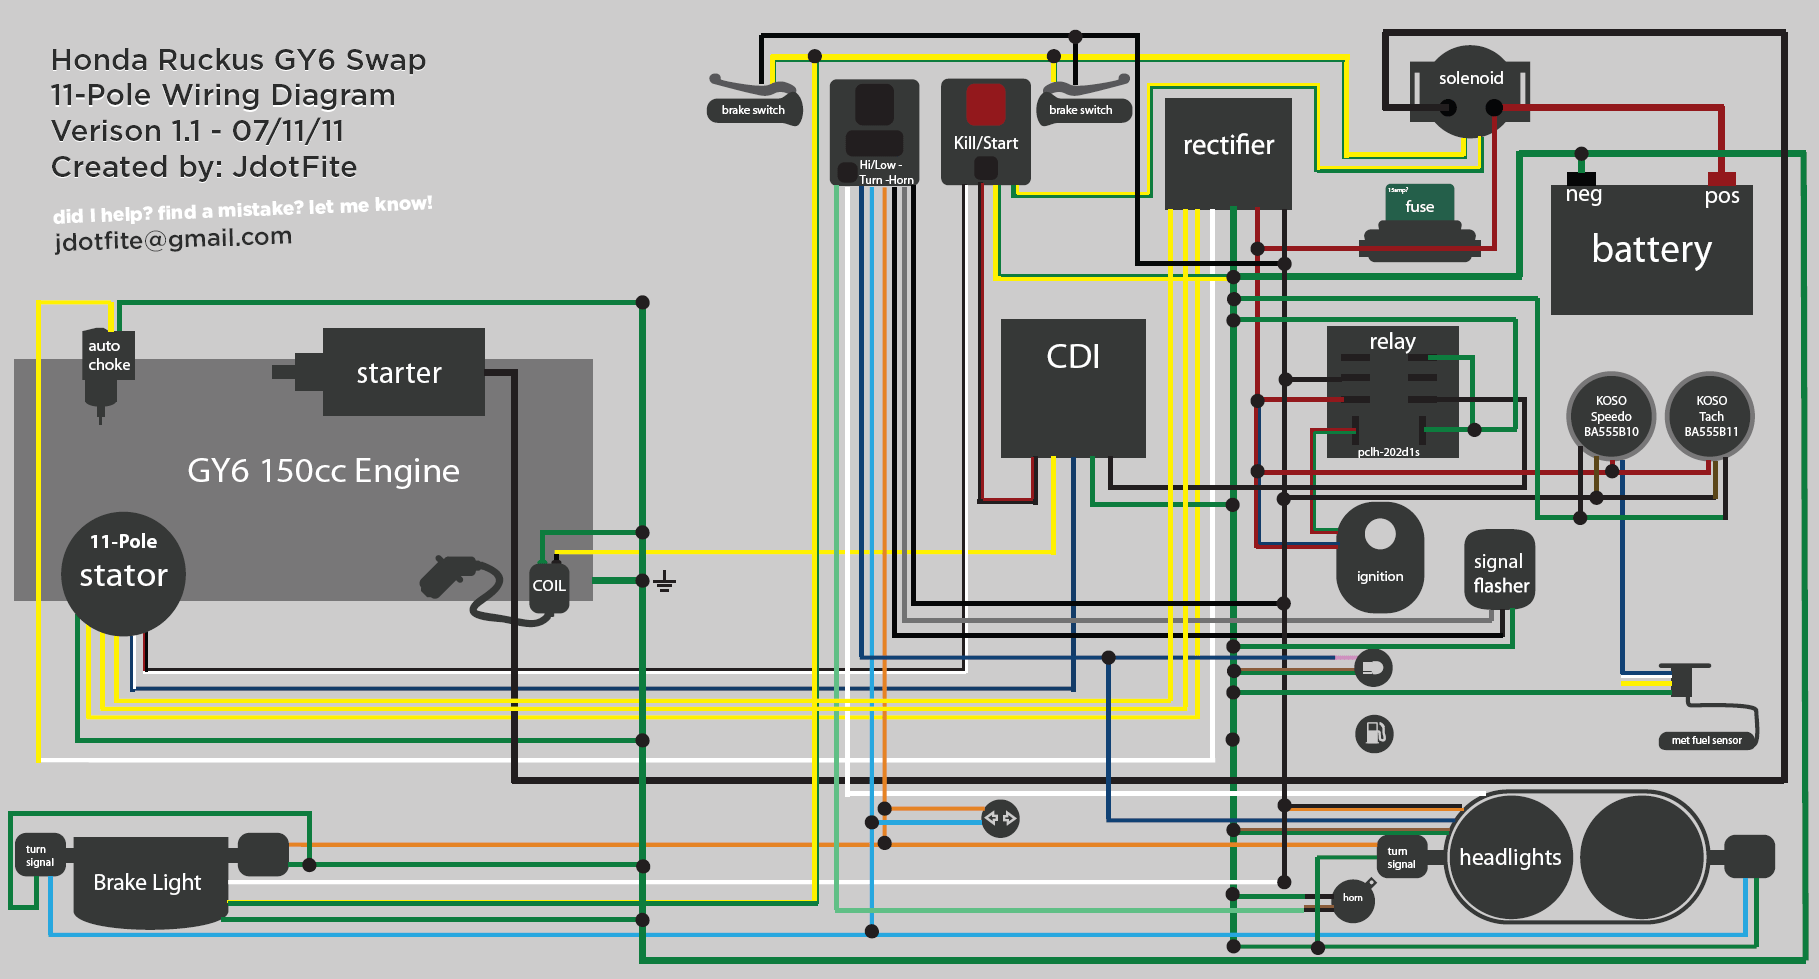 ruckus gy6 wiring diagram ruckus gy6 swap wiring diagram honda ruckus documentation honda ruckus gy6 wiring diagram at virtualis.co